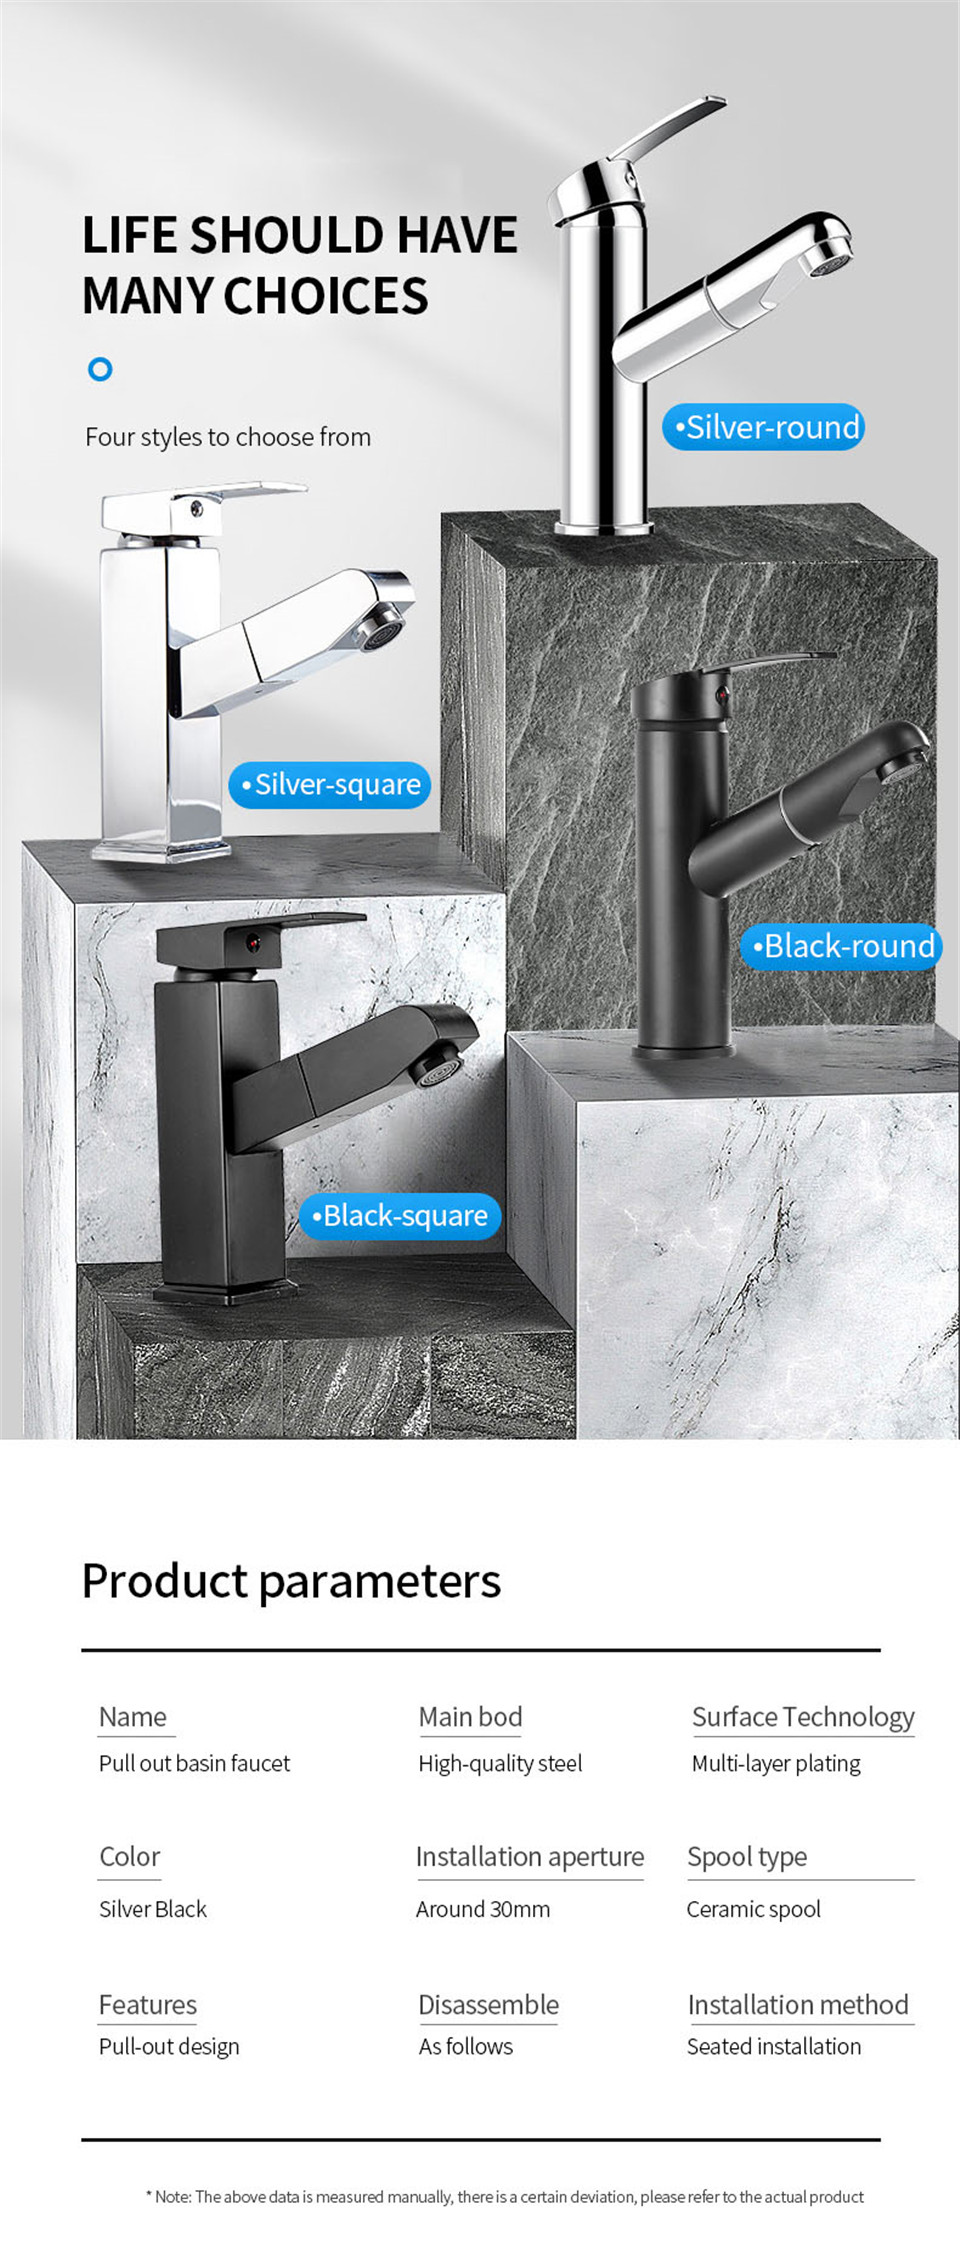 H64e4f53cd72d401cb0e04901078463a8V XUNSHINI Bathroom Kitchen Basin Faucet Single Handle Pull Out Spray Sink Tap Hot And Cold Water Crane Deck Mount Faucets